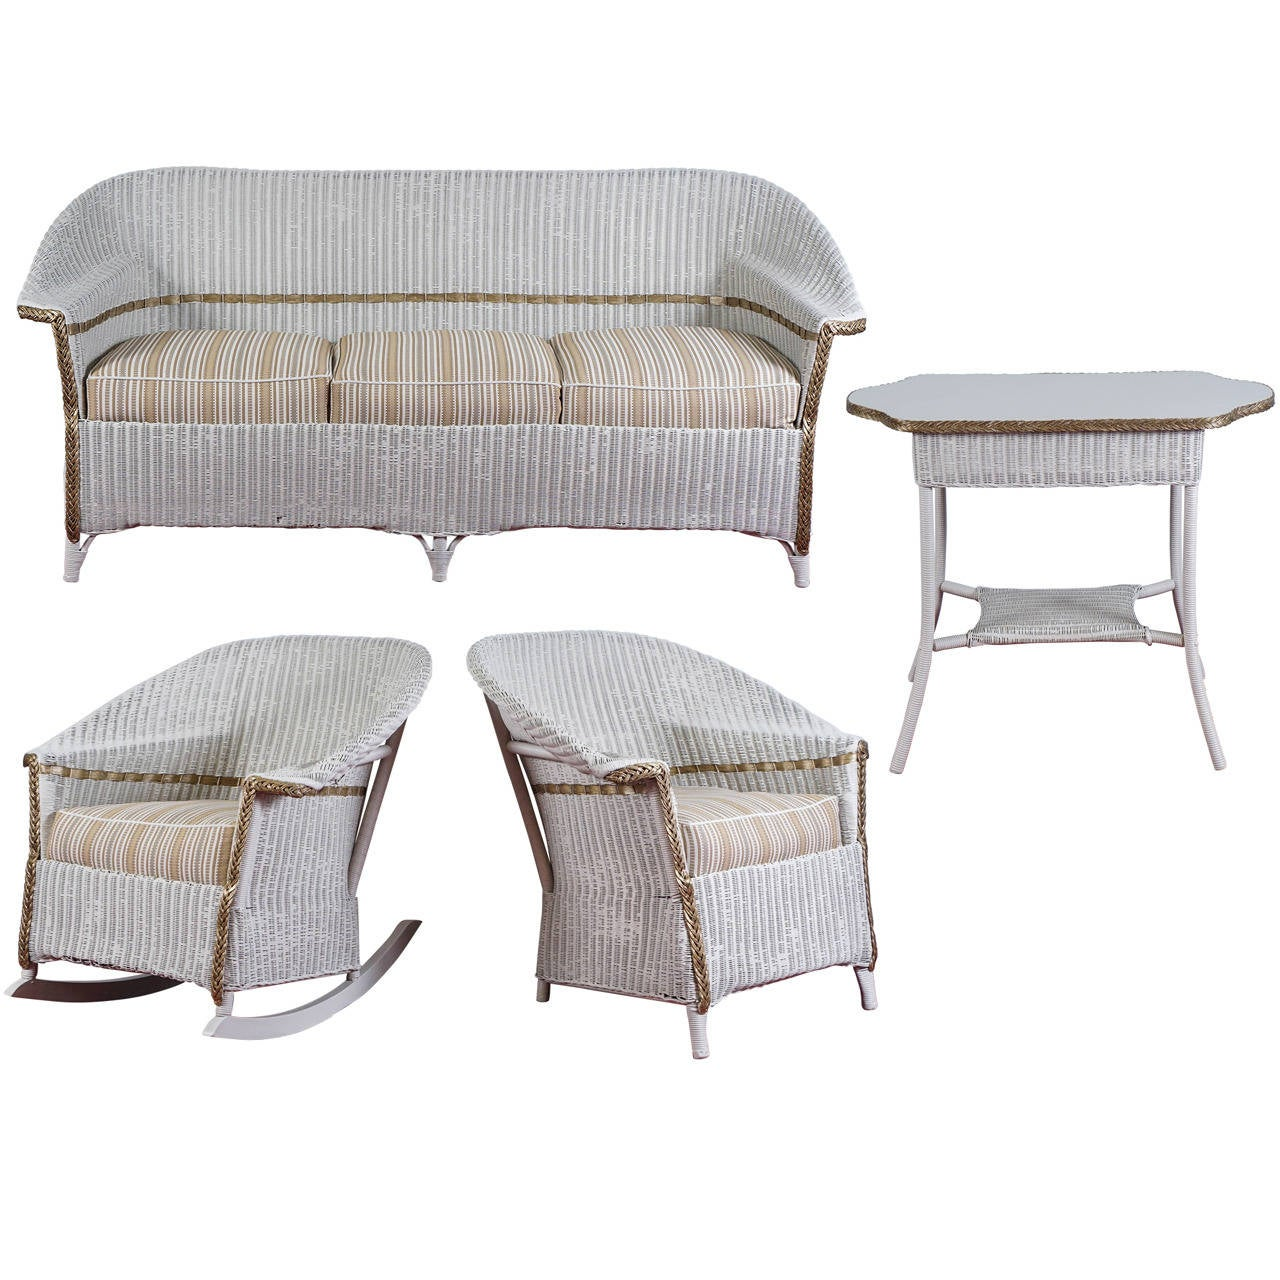 heywood wakefield wicker chairs church of america stylish four piece set at 1stdibs for sale